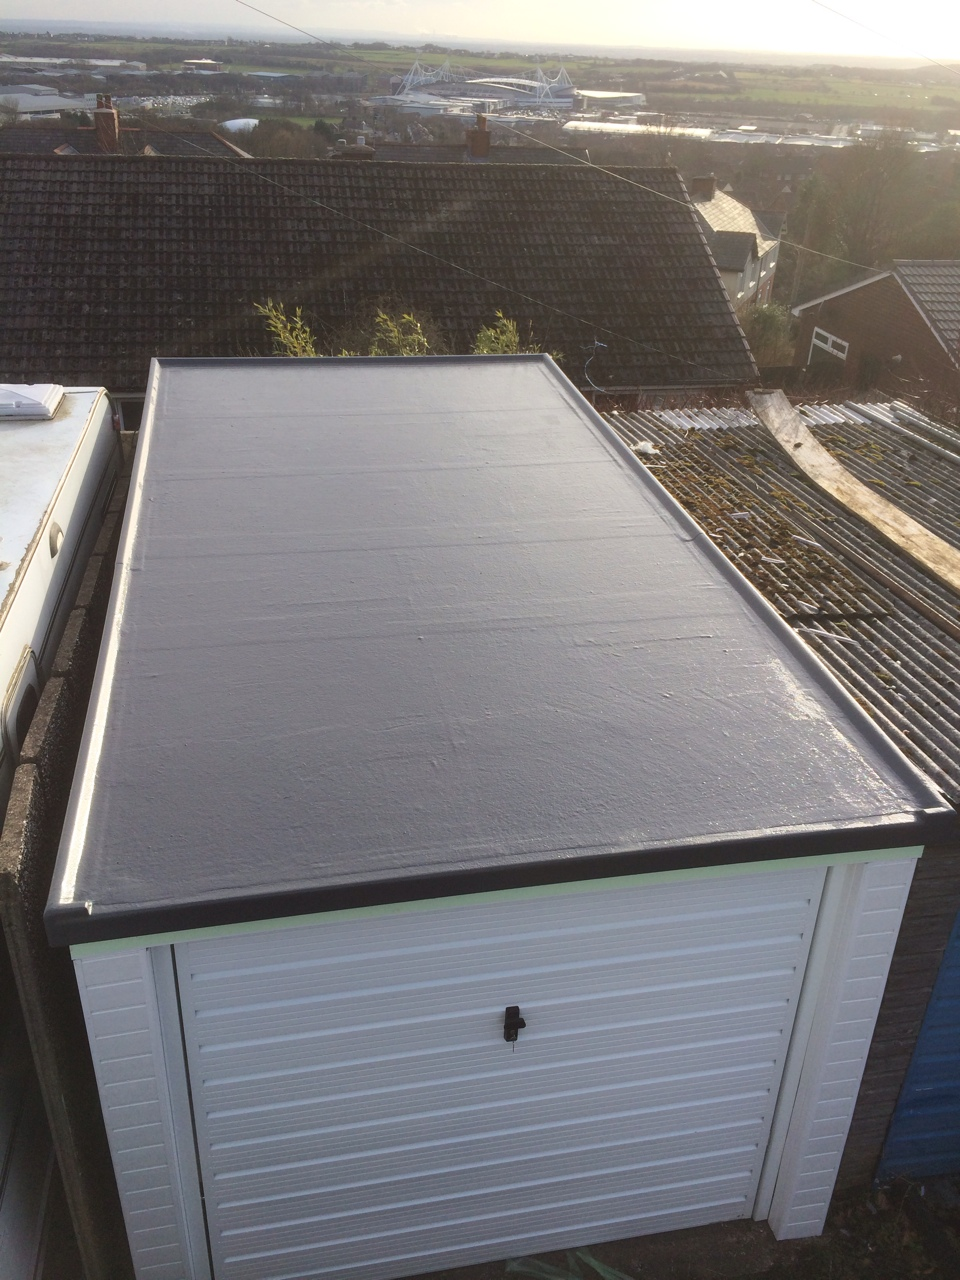 image shows grp roofing on a garage in wigan